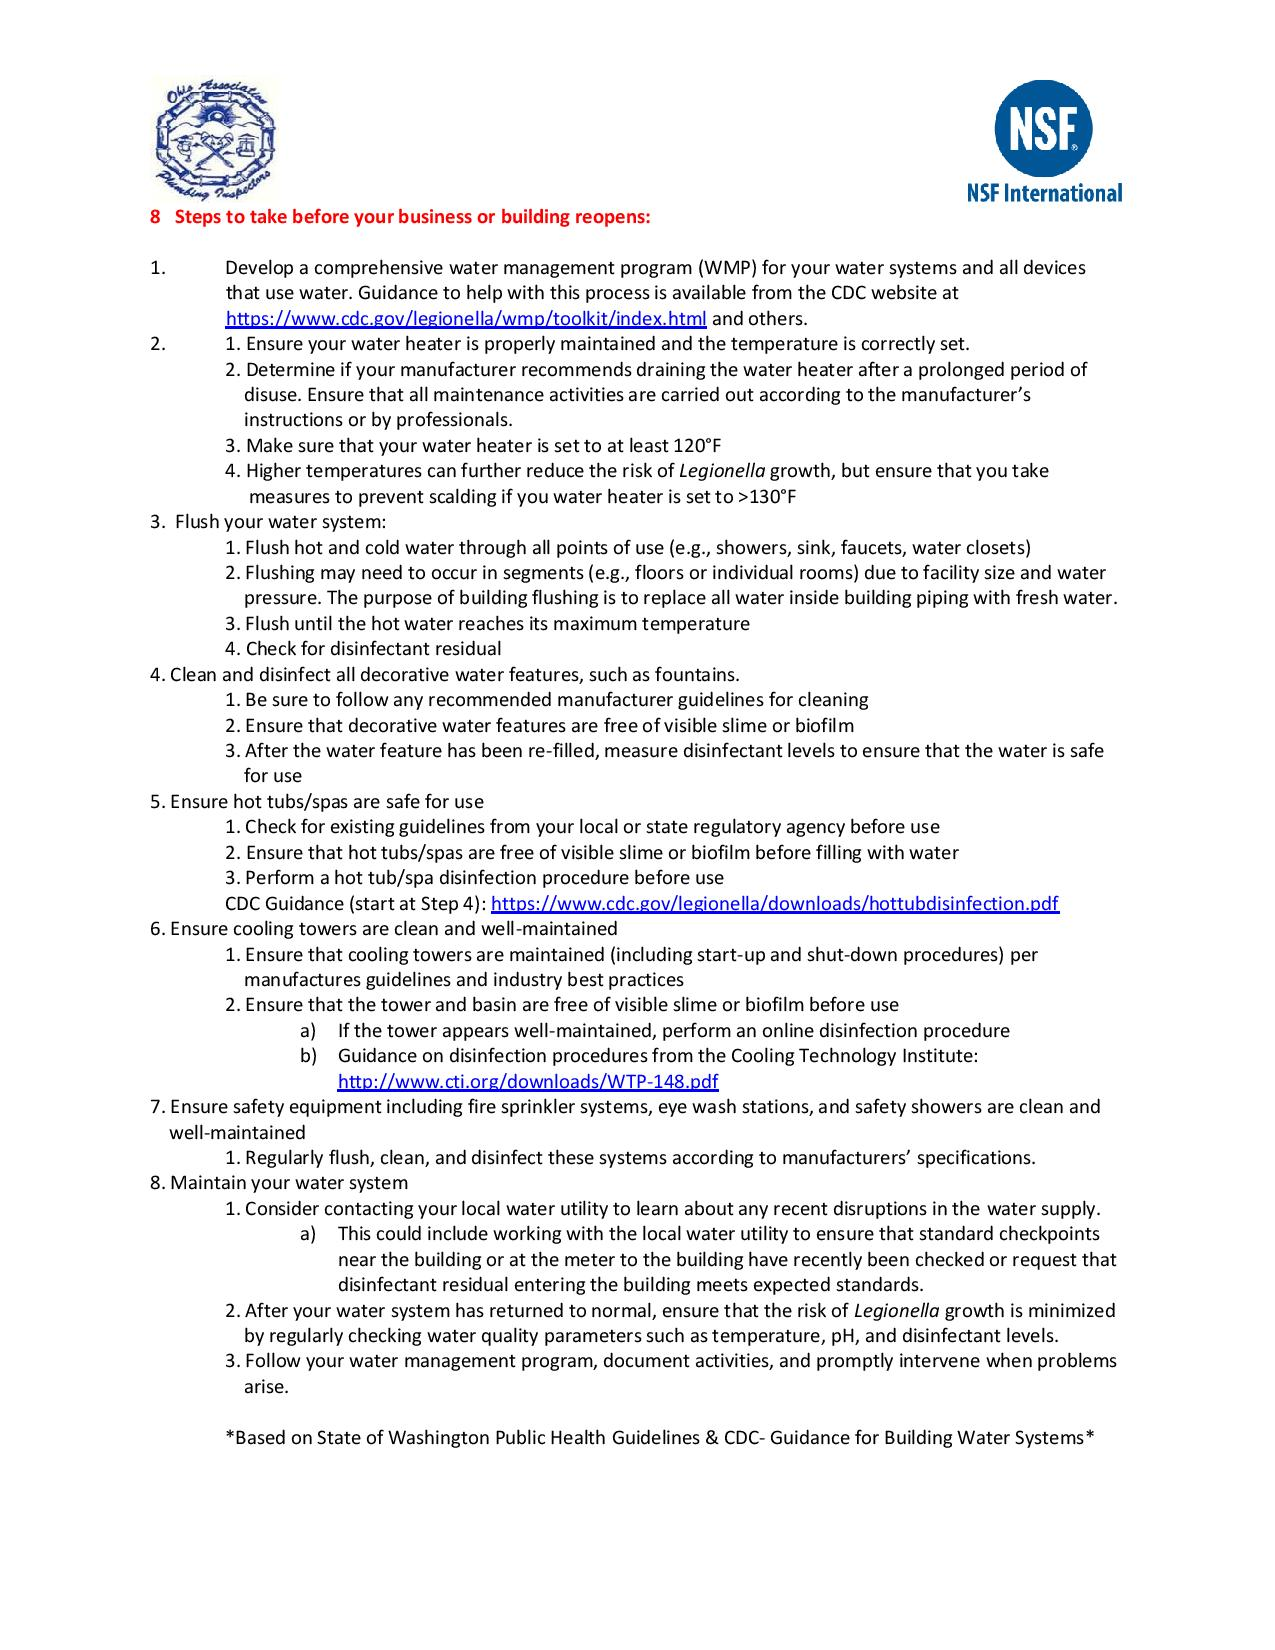 Building Water Systems Guidance-page-002